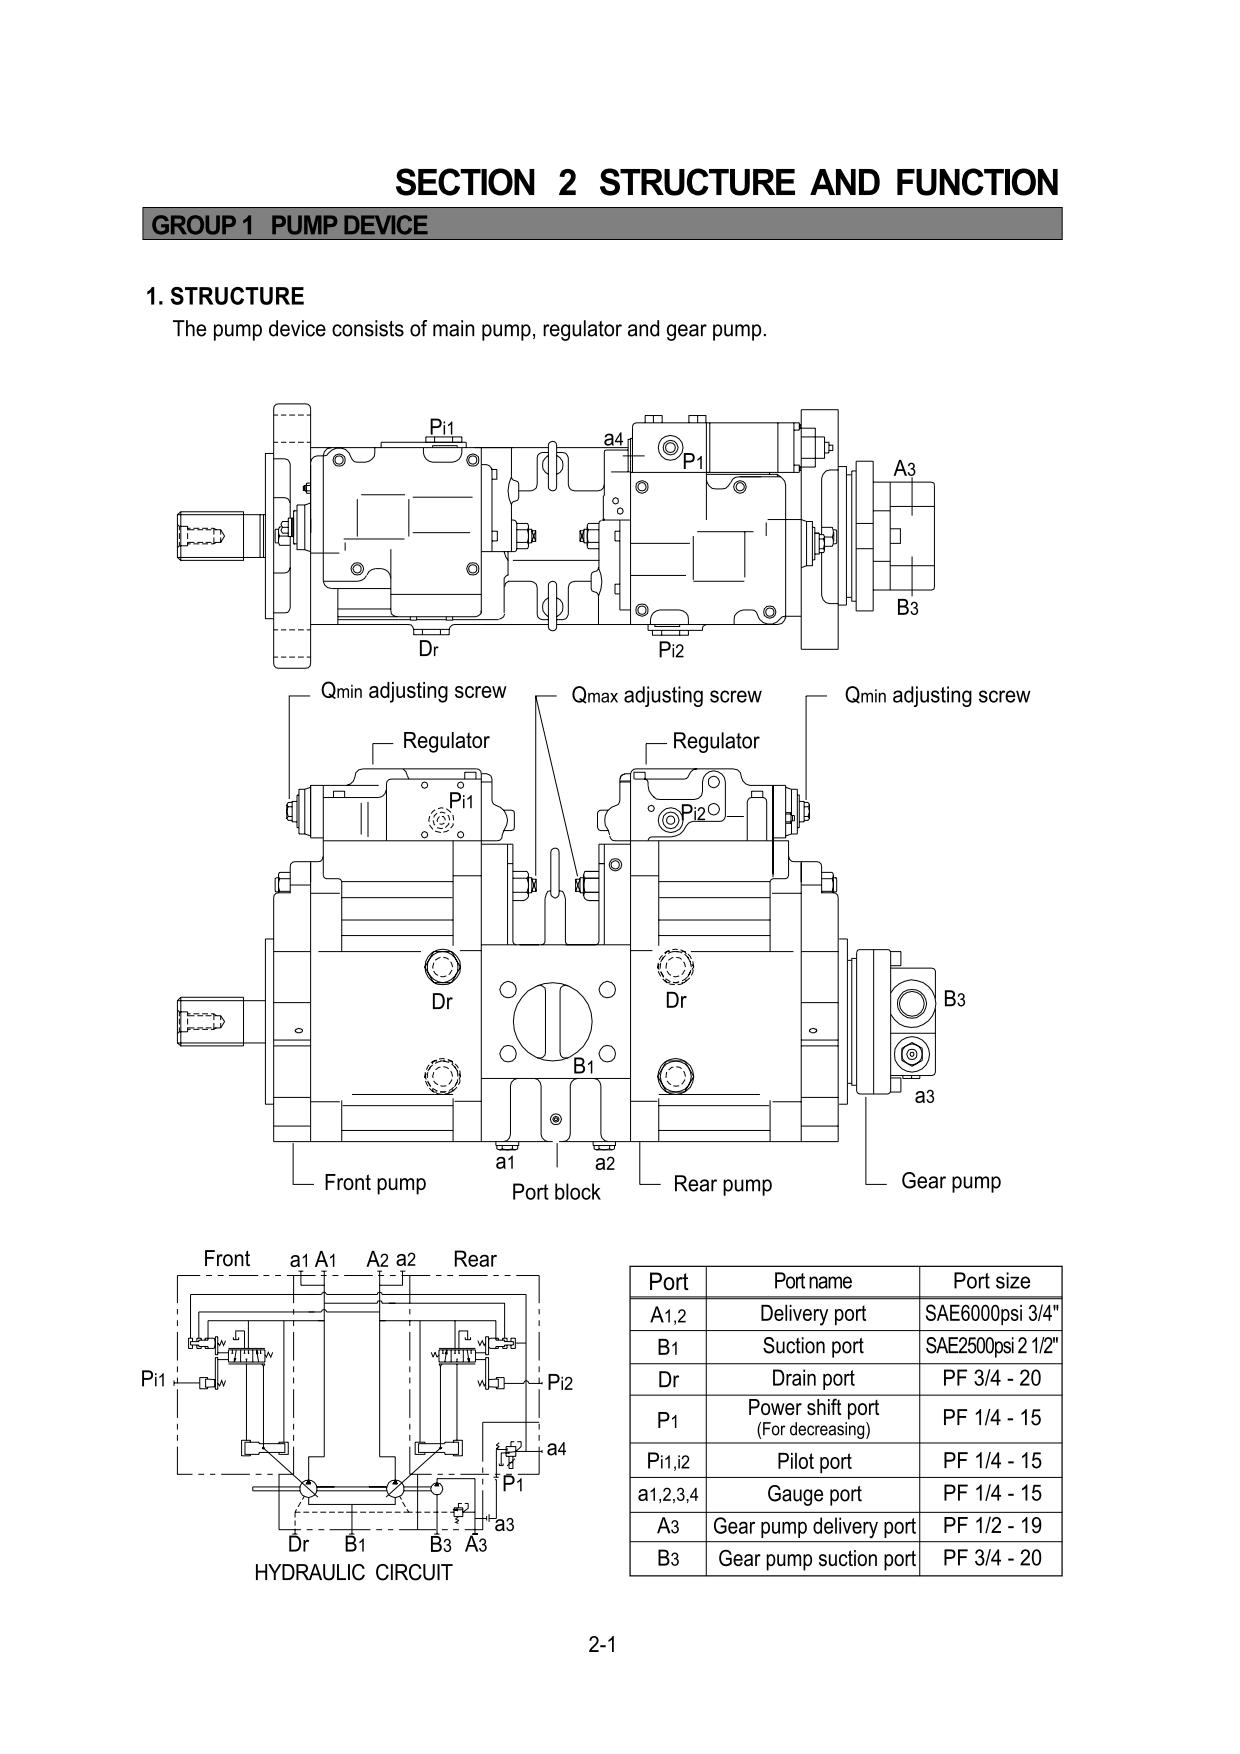 Guidelines for repair and maintenance of Hyundai R130LC-3